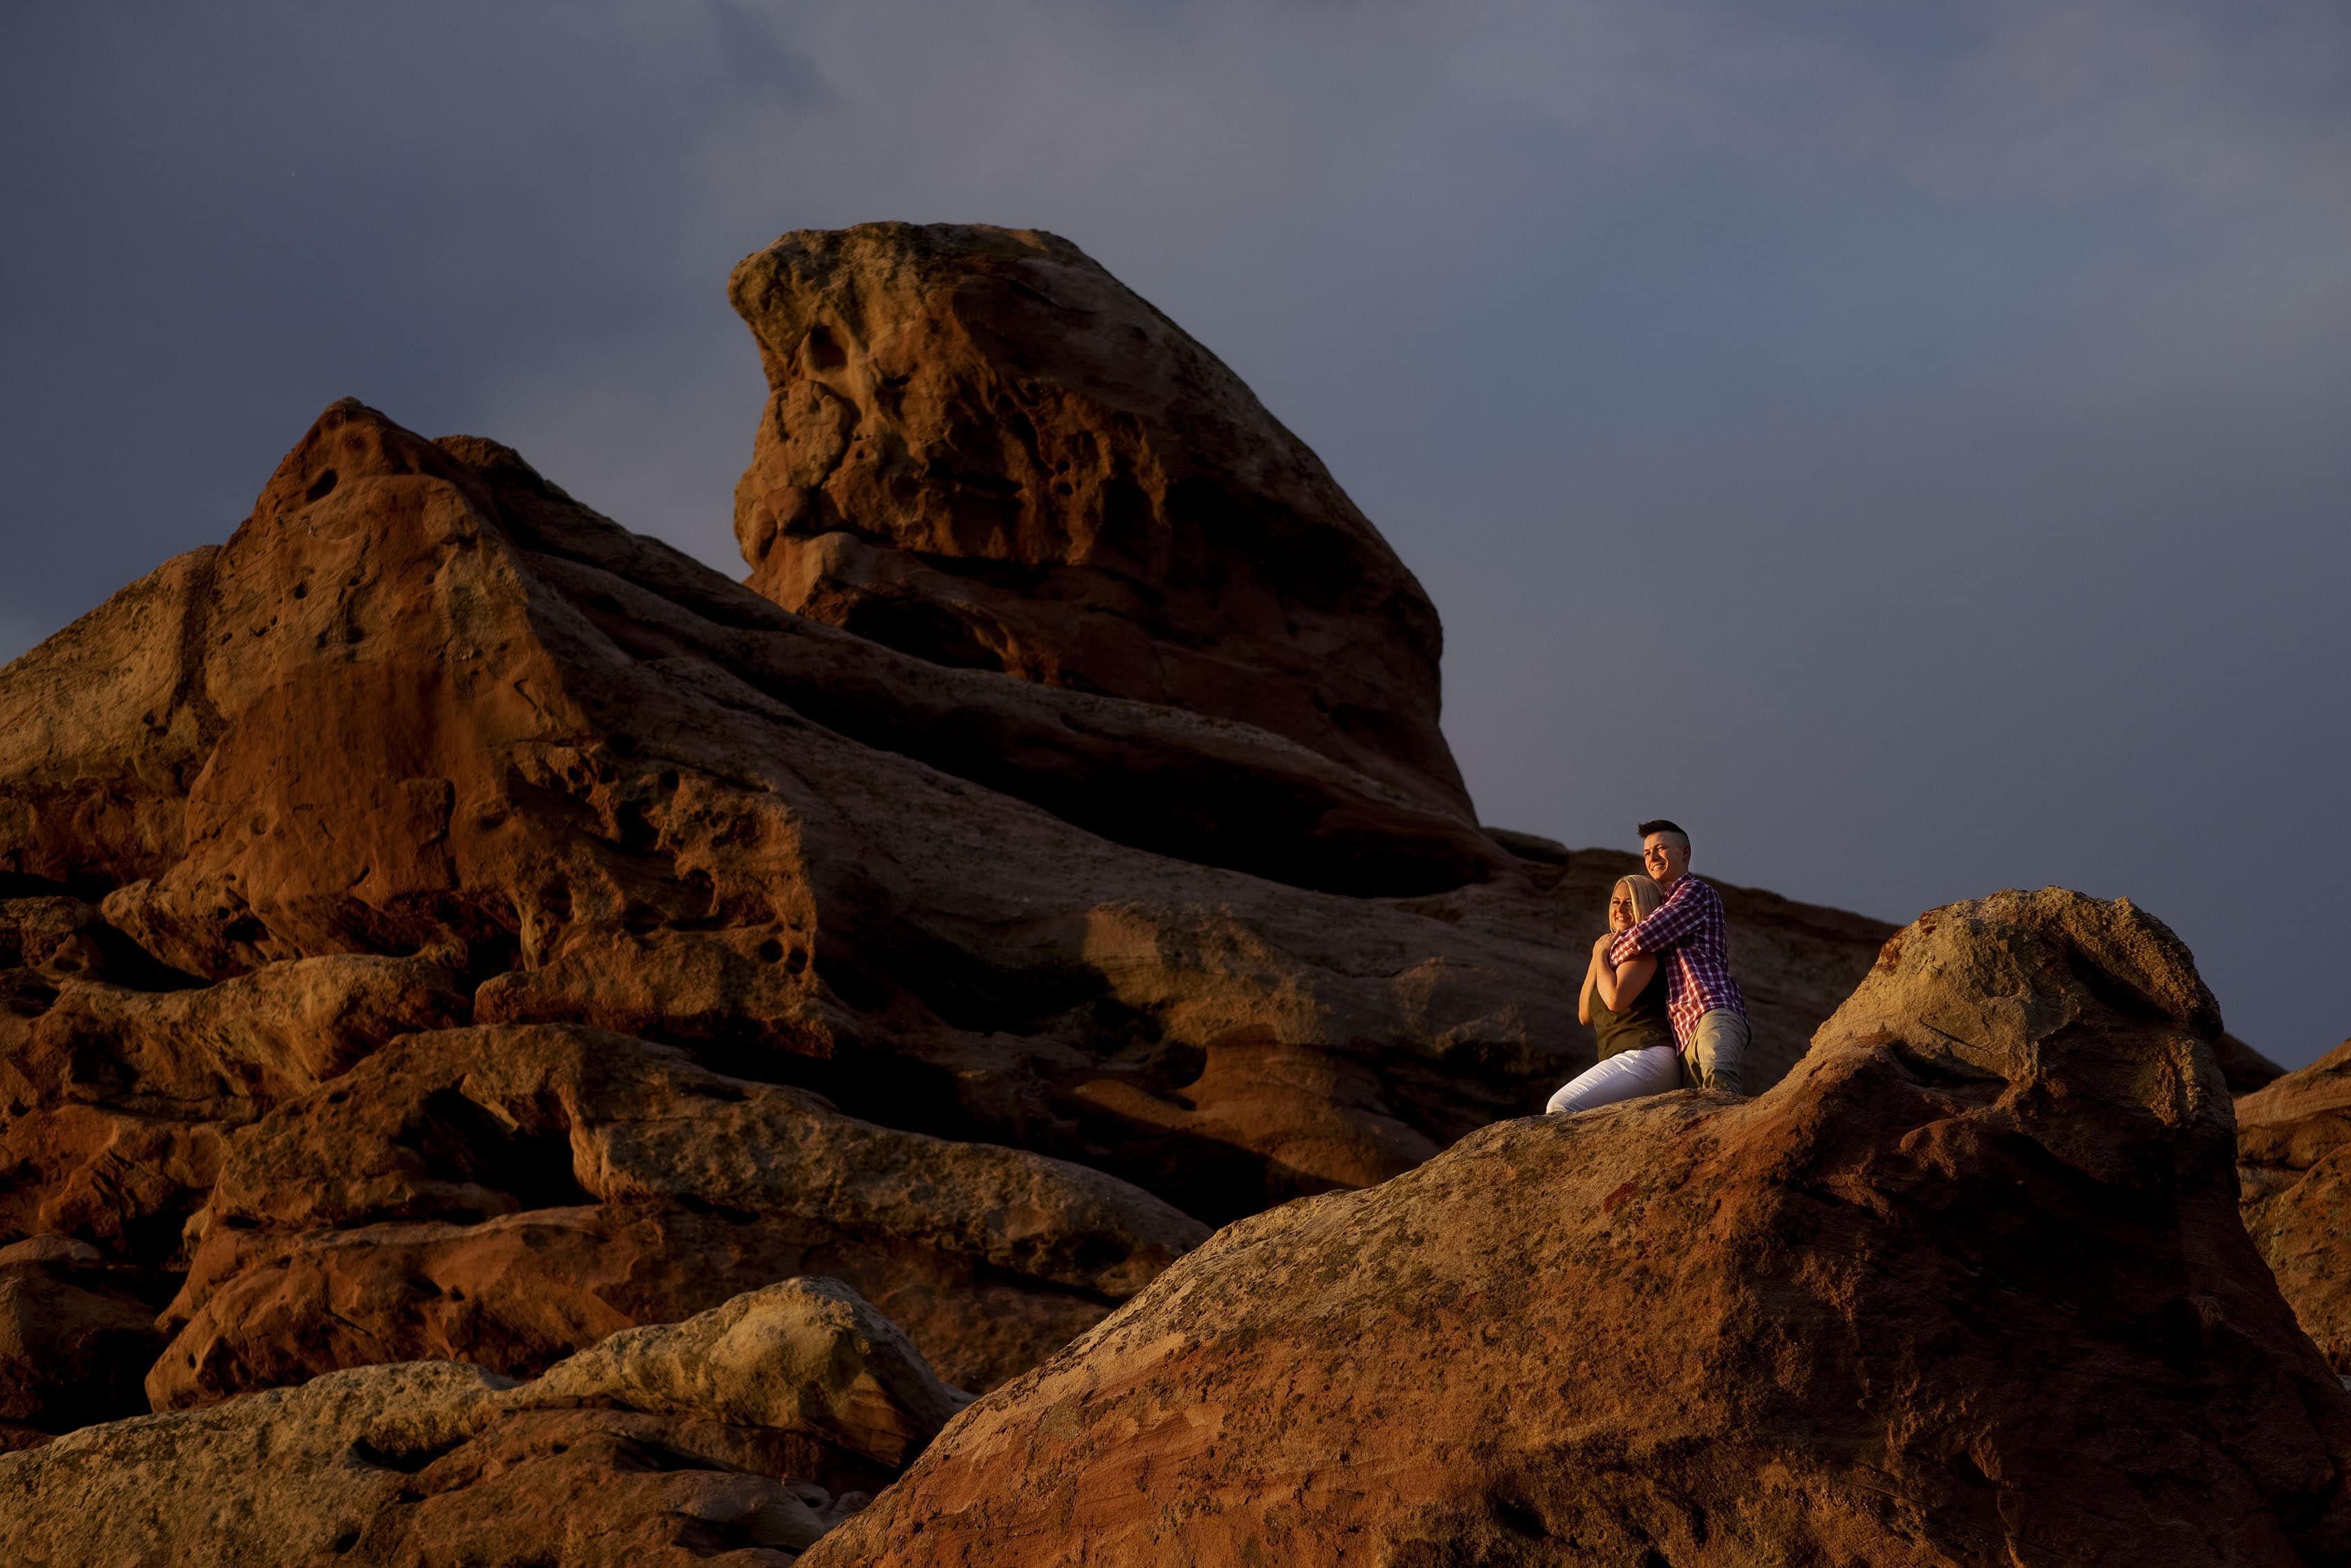 Kelsey and Colin pose on a red rock formation during their engagement session